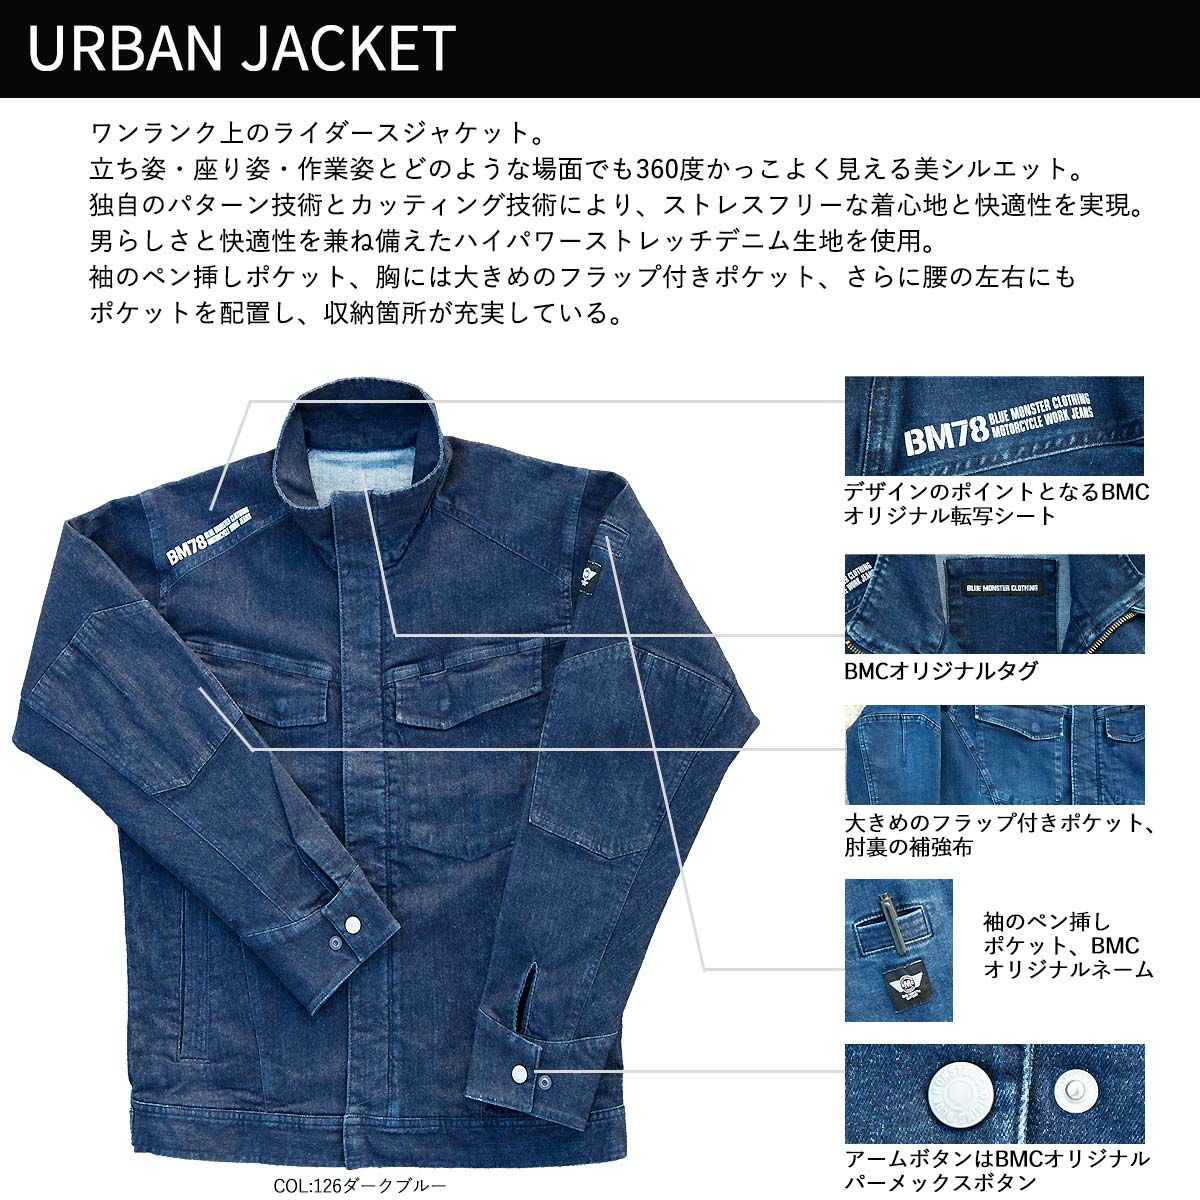 66f67834216 The size that the stretch denim Urban jacket men size that BLUE MONSTER  CLOTHING BMWST01 riders jacket (work jacket) one wash   dark blue   light  blue S-XL ...